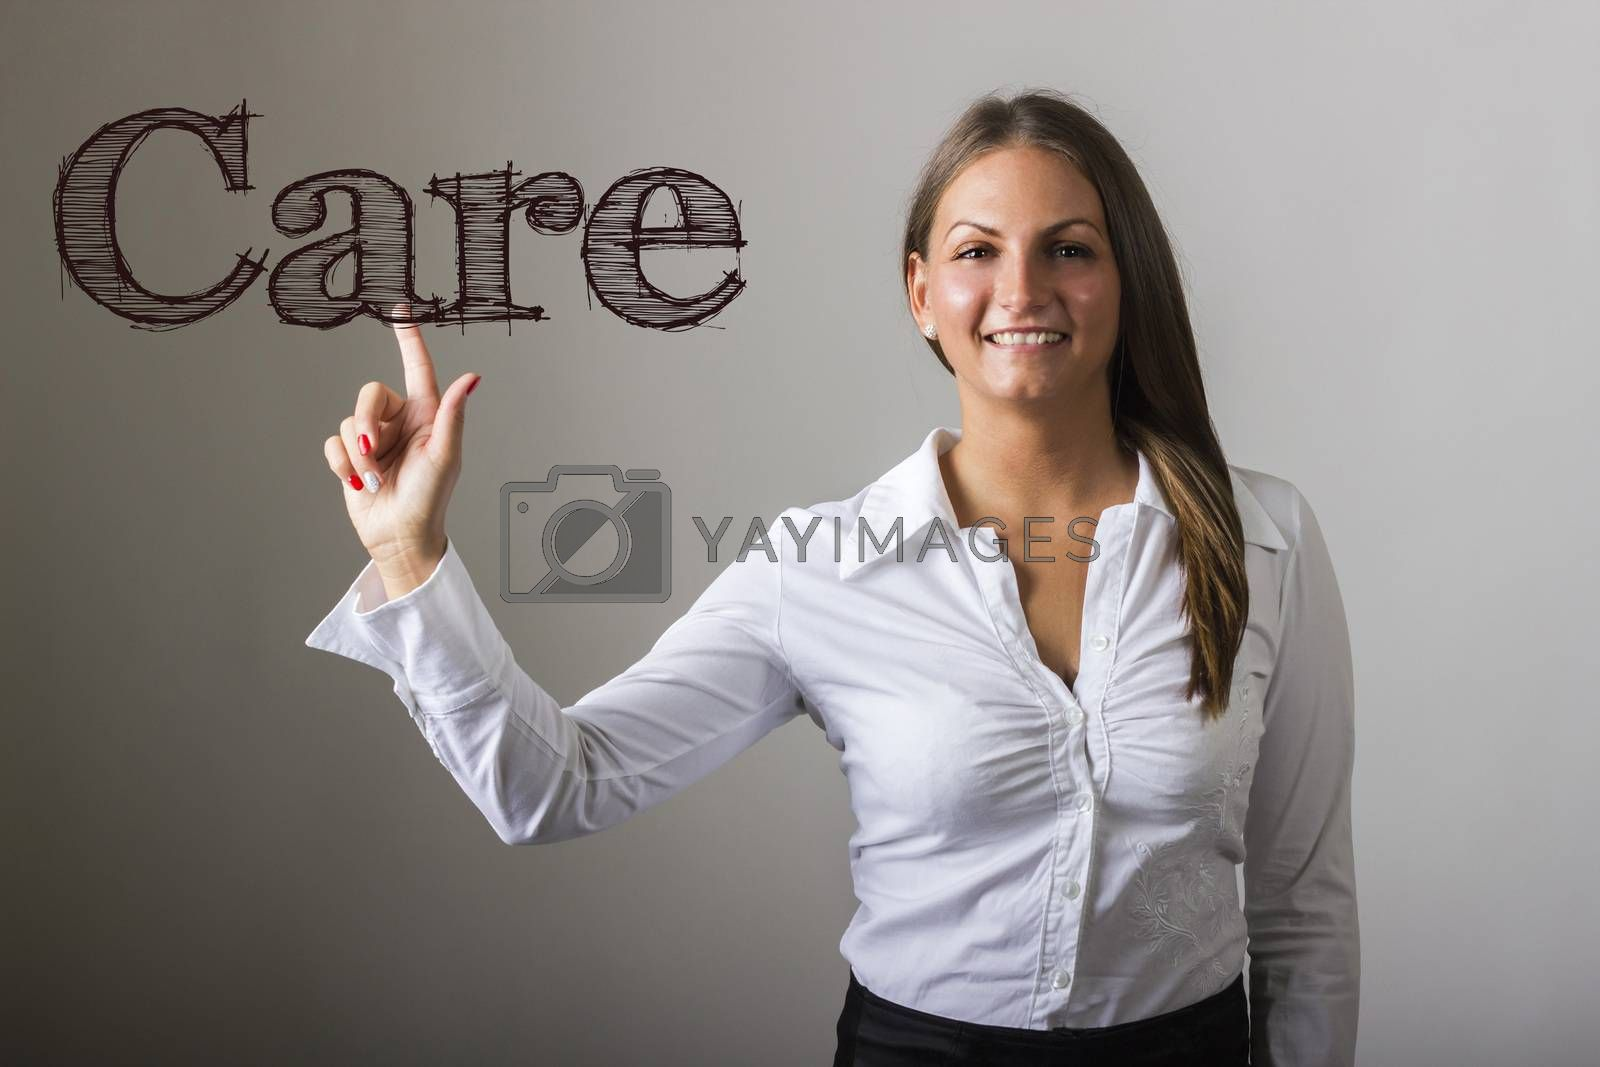 Care - Beautiful girl touching text on transparent surface - horizontal image